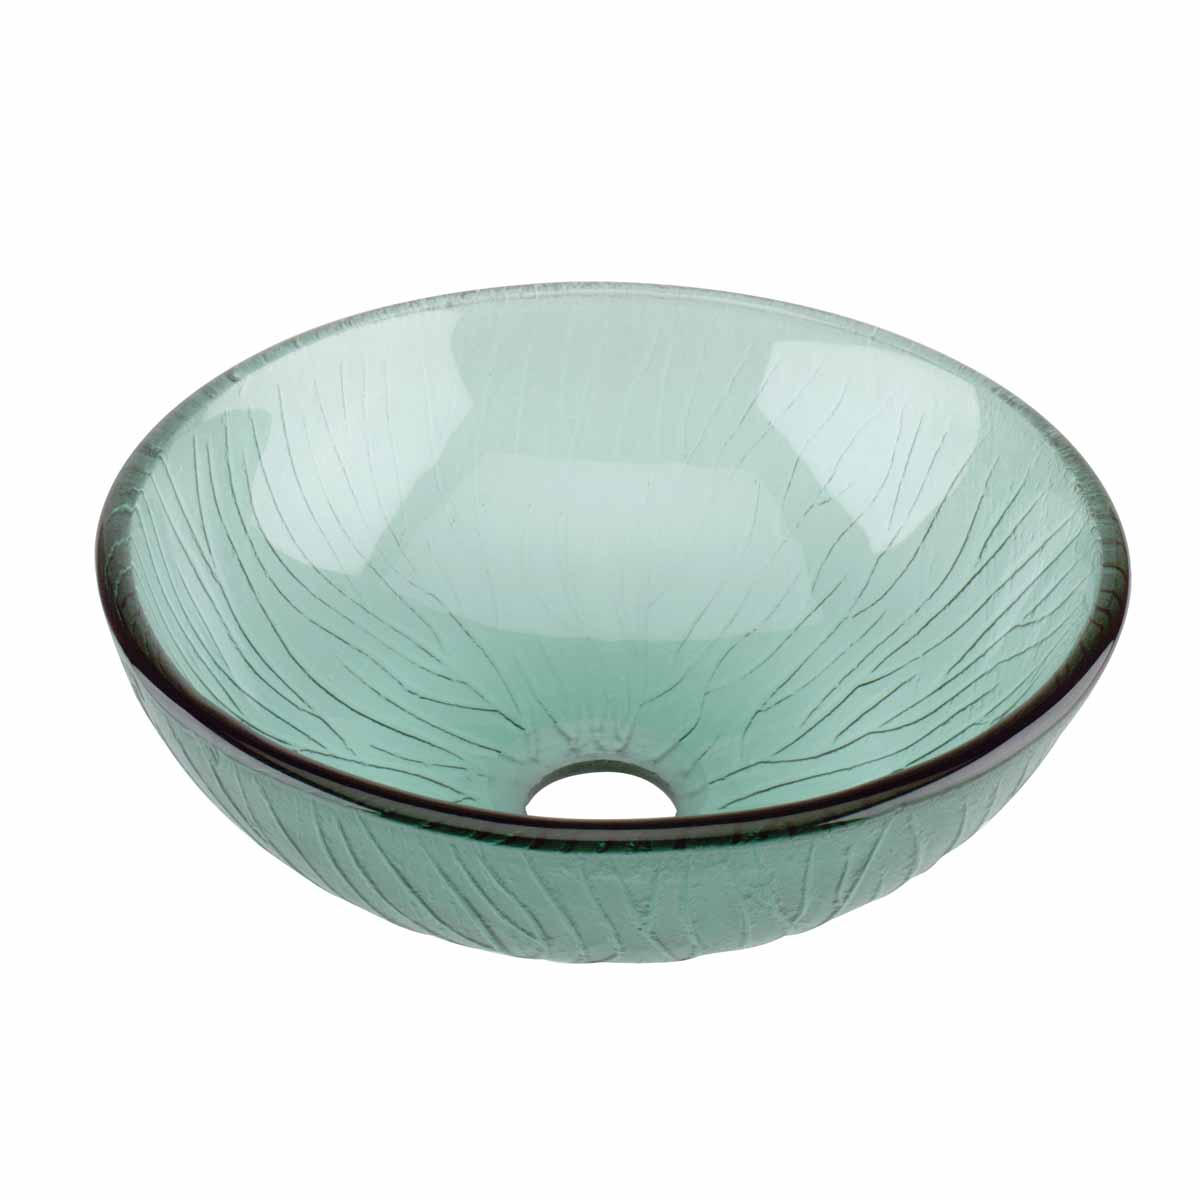 Renovator's Supply Frosted Green Tempered Glass Mini Bowl Vessel Sink with Drain